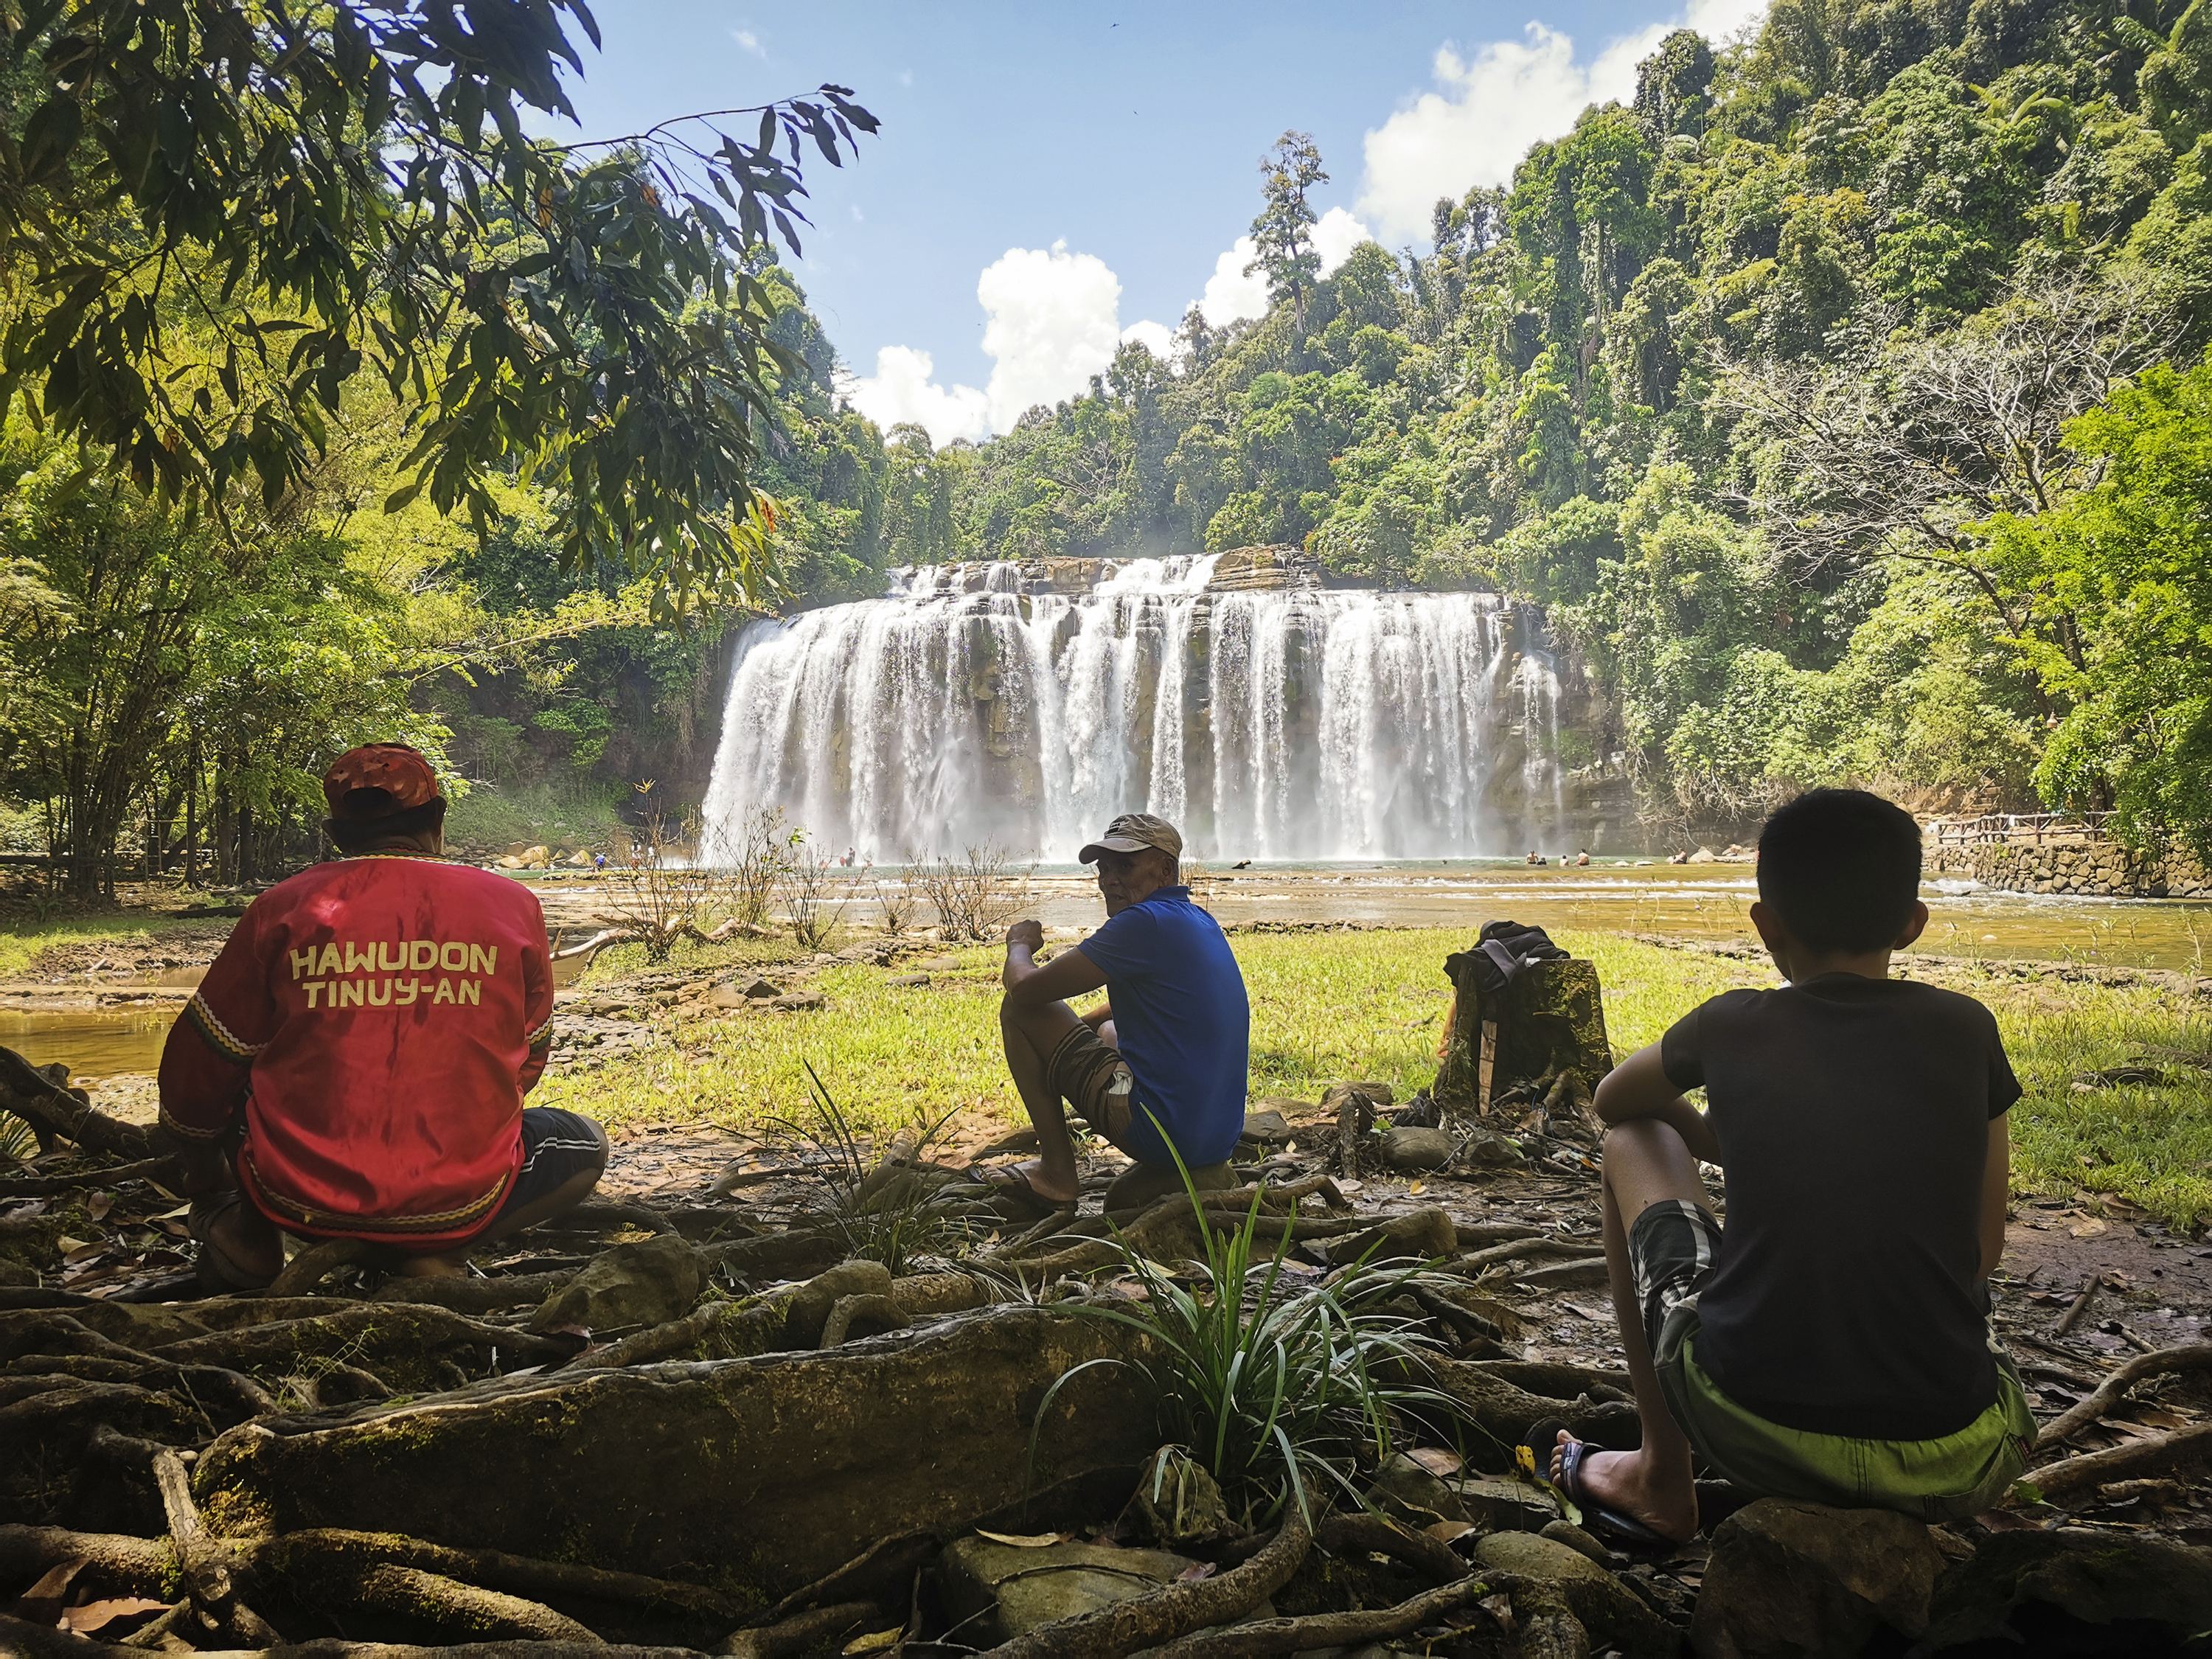 People sit across from a waterfall in a clearing in a lush forest.